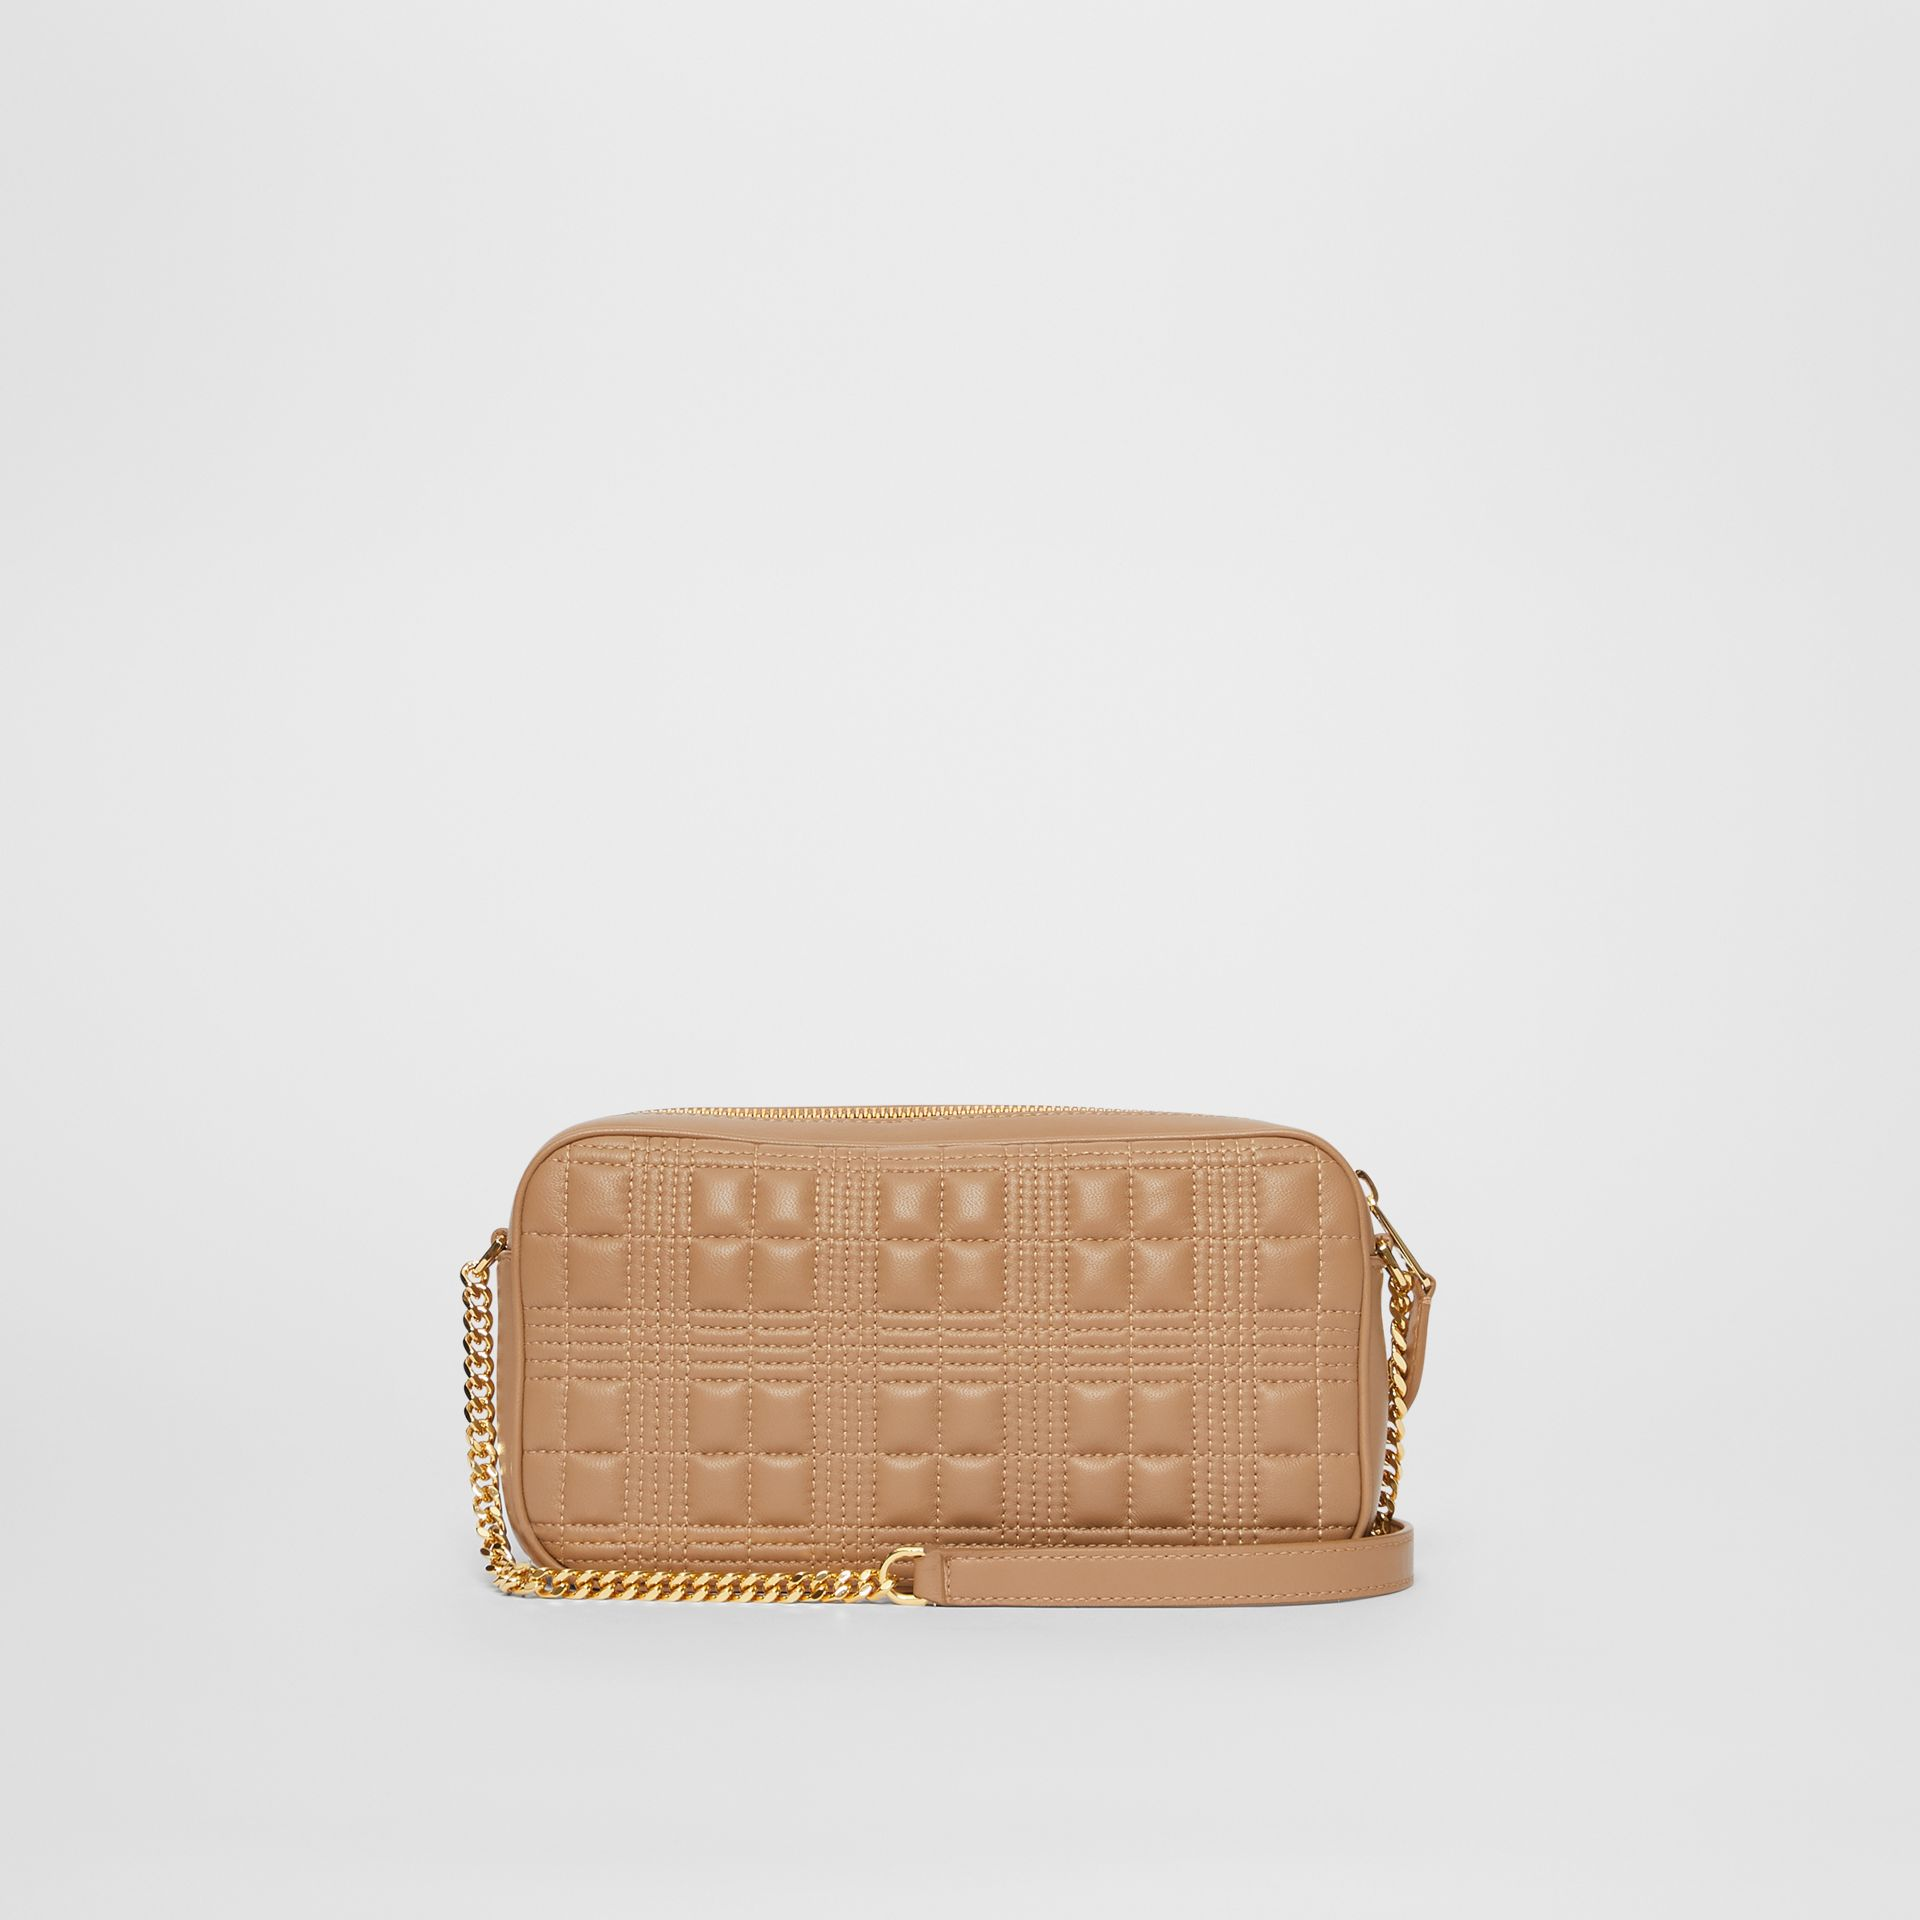 Quilted Lambskin Camera Bag in Camel - Women | Burberry - gallery image 7